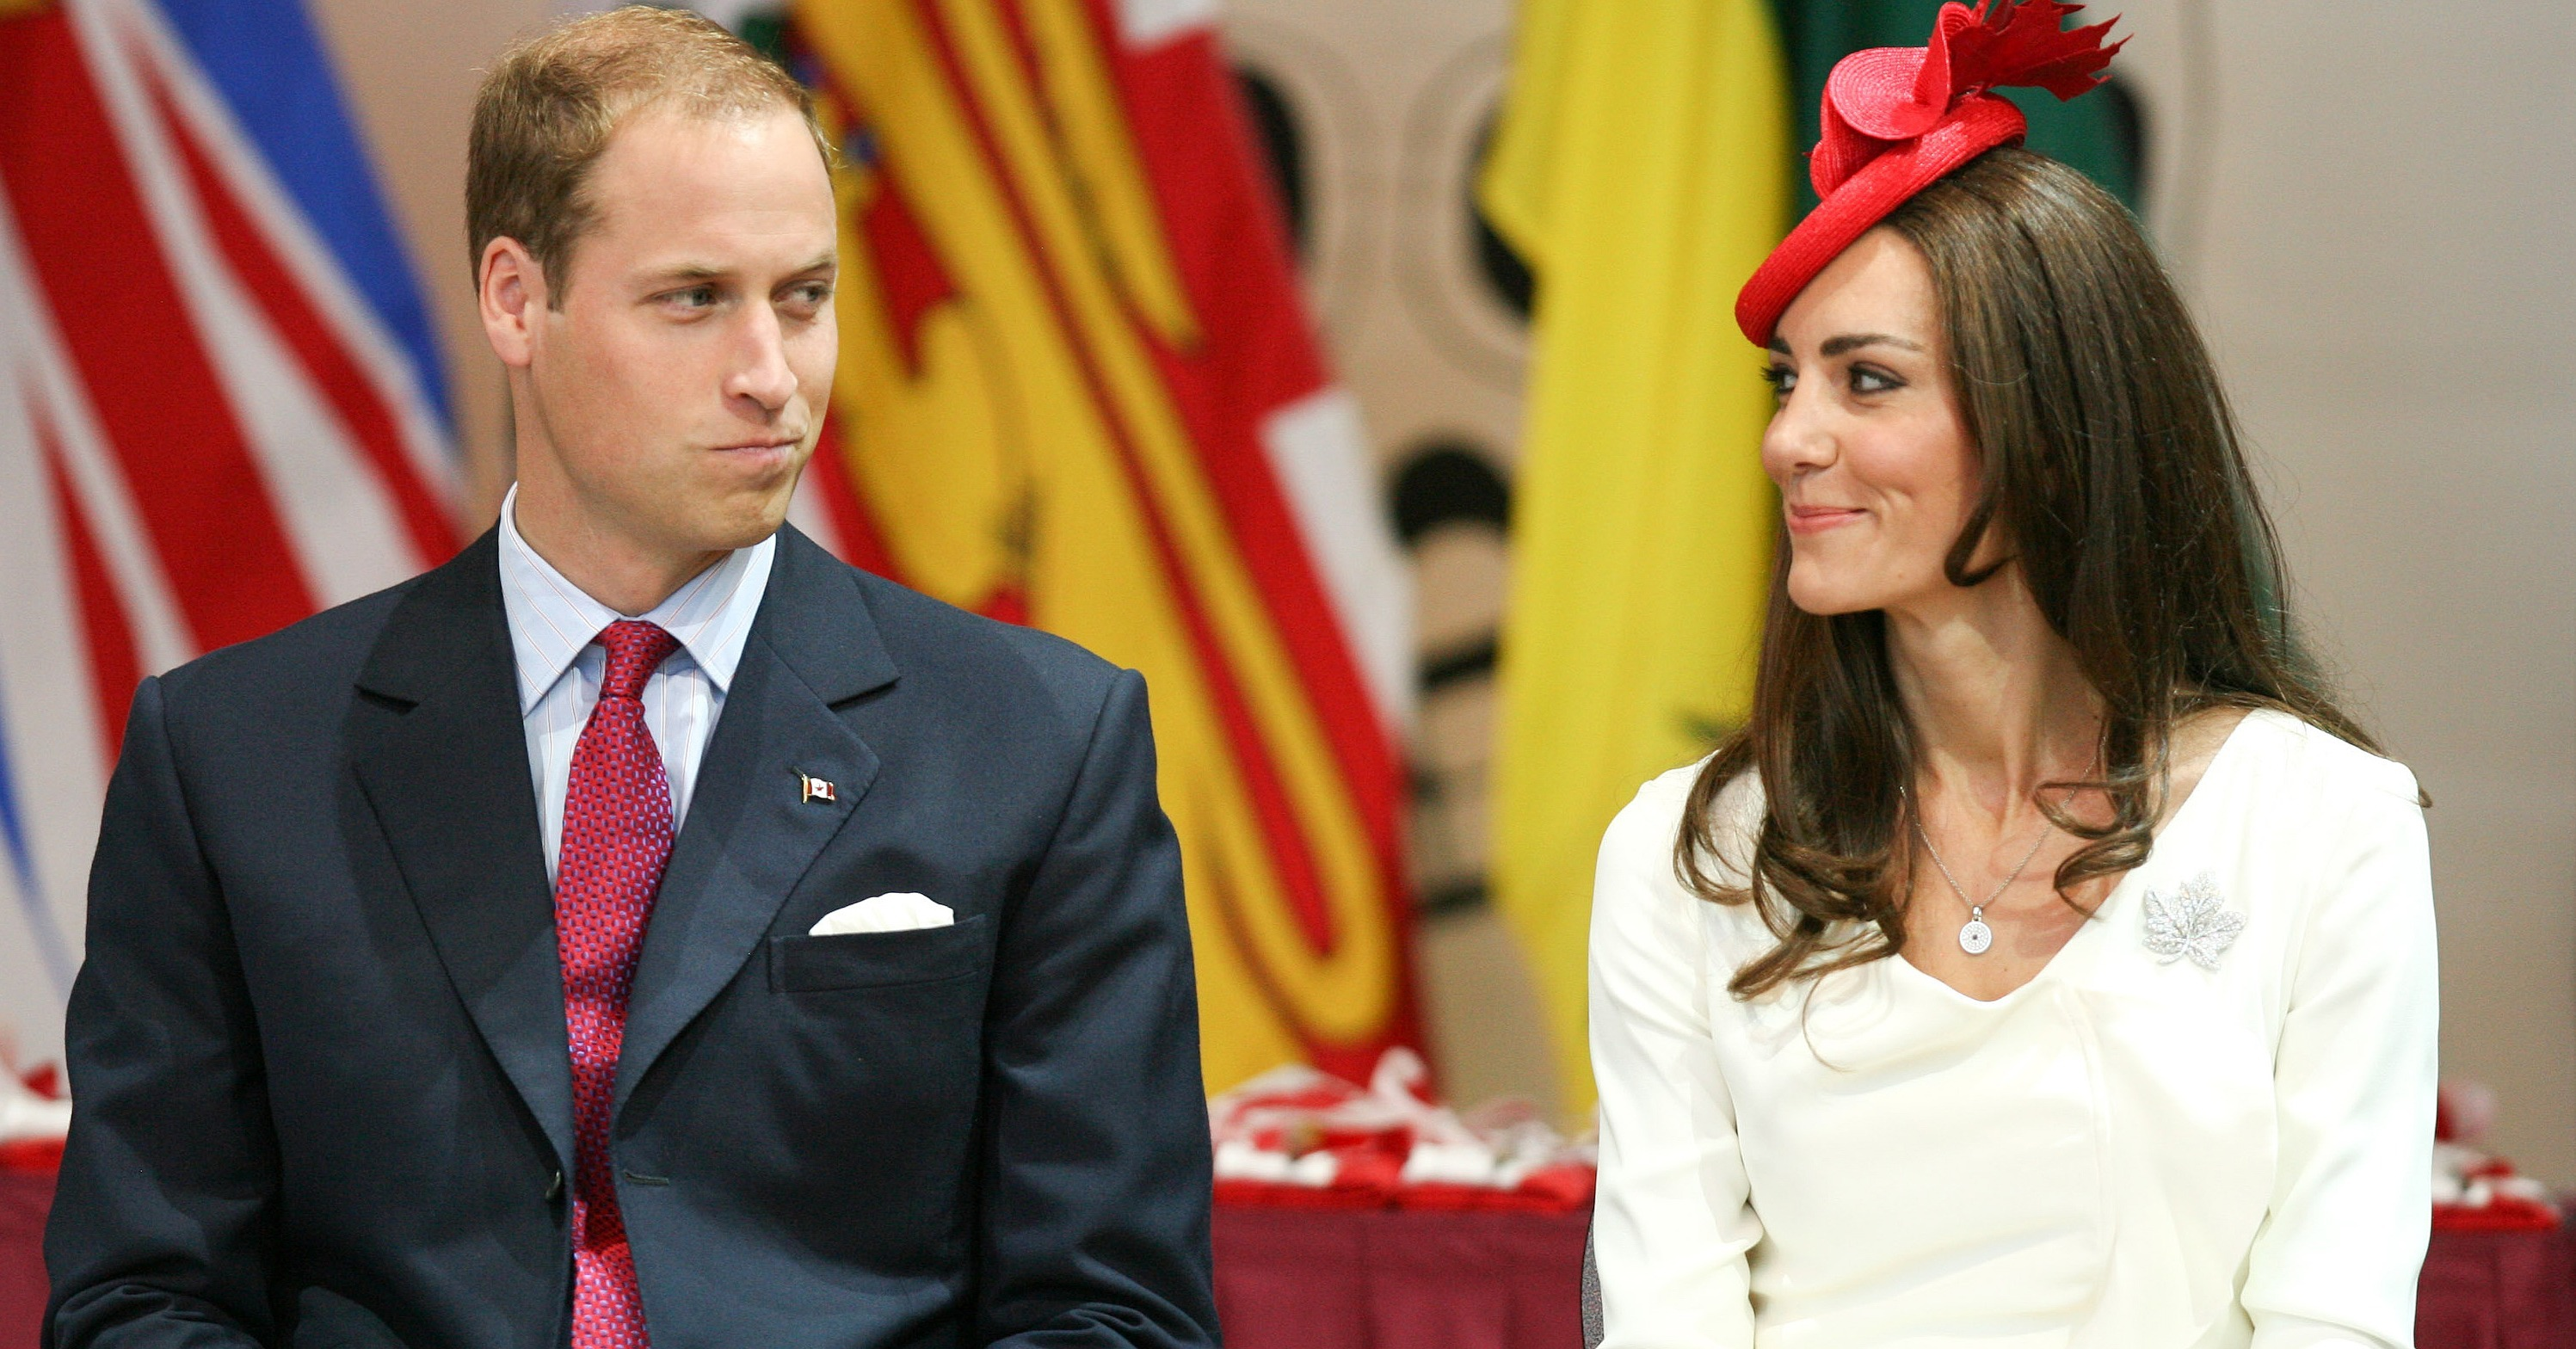 kate middleton dating In november 2010, william proposed to middleton during a rustic vacation in kenya the couple, now known as the duke and duchess of cambridge , tied the knot on april 29, 2011, at westminster abbey.